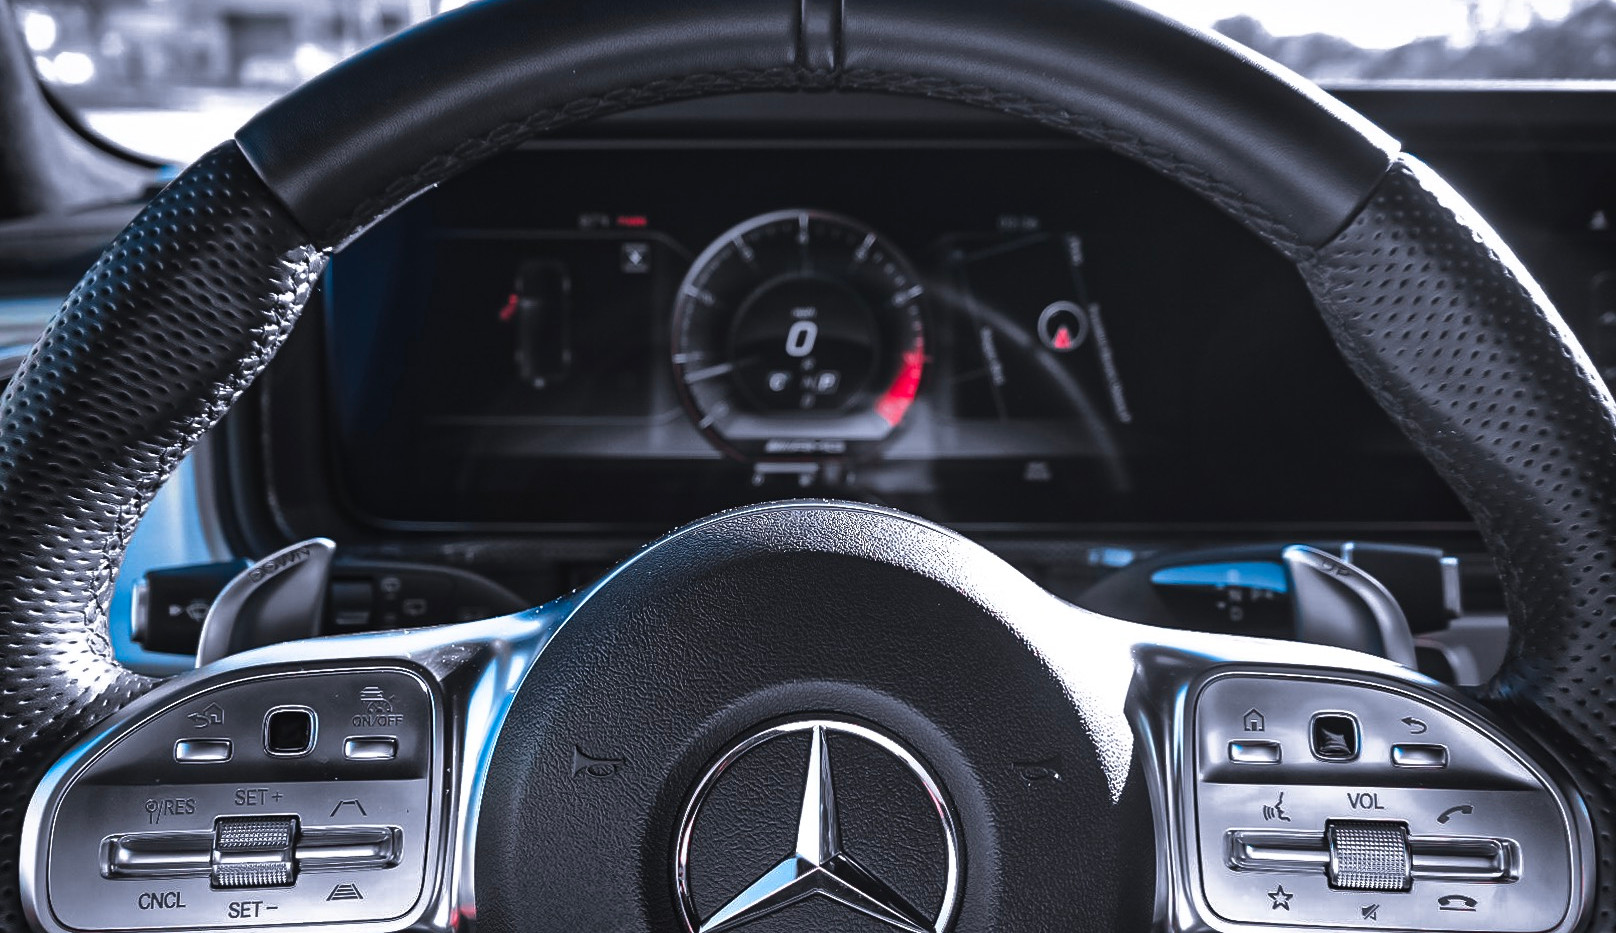 G63 AMG Cockpit steering wheel